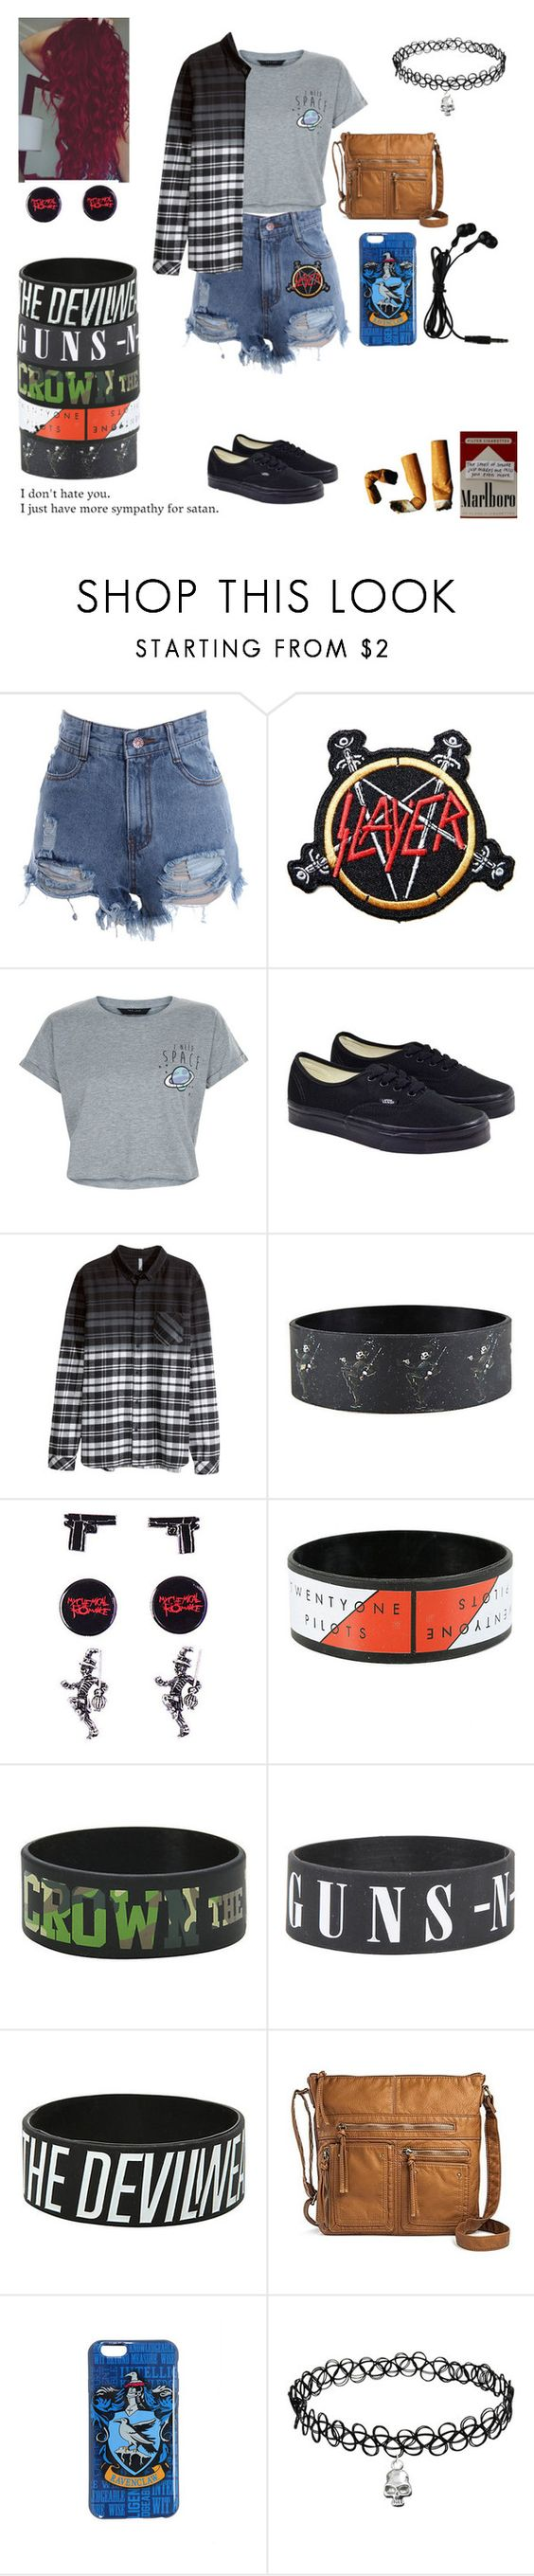 """""""Untitled #383"""" by threedaystoremember ❤ liked on Polyvore featuring New Look, Vans, H&M, CO, Prada and Bueno"""